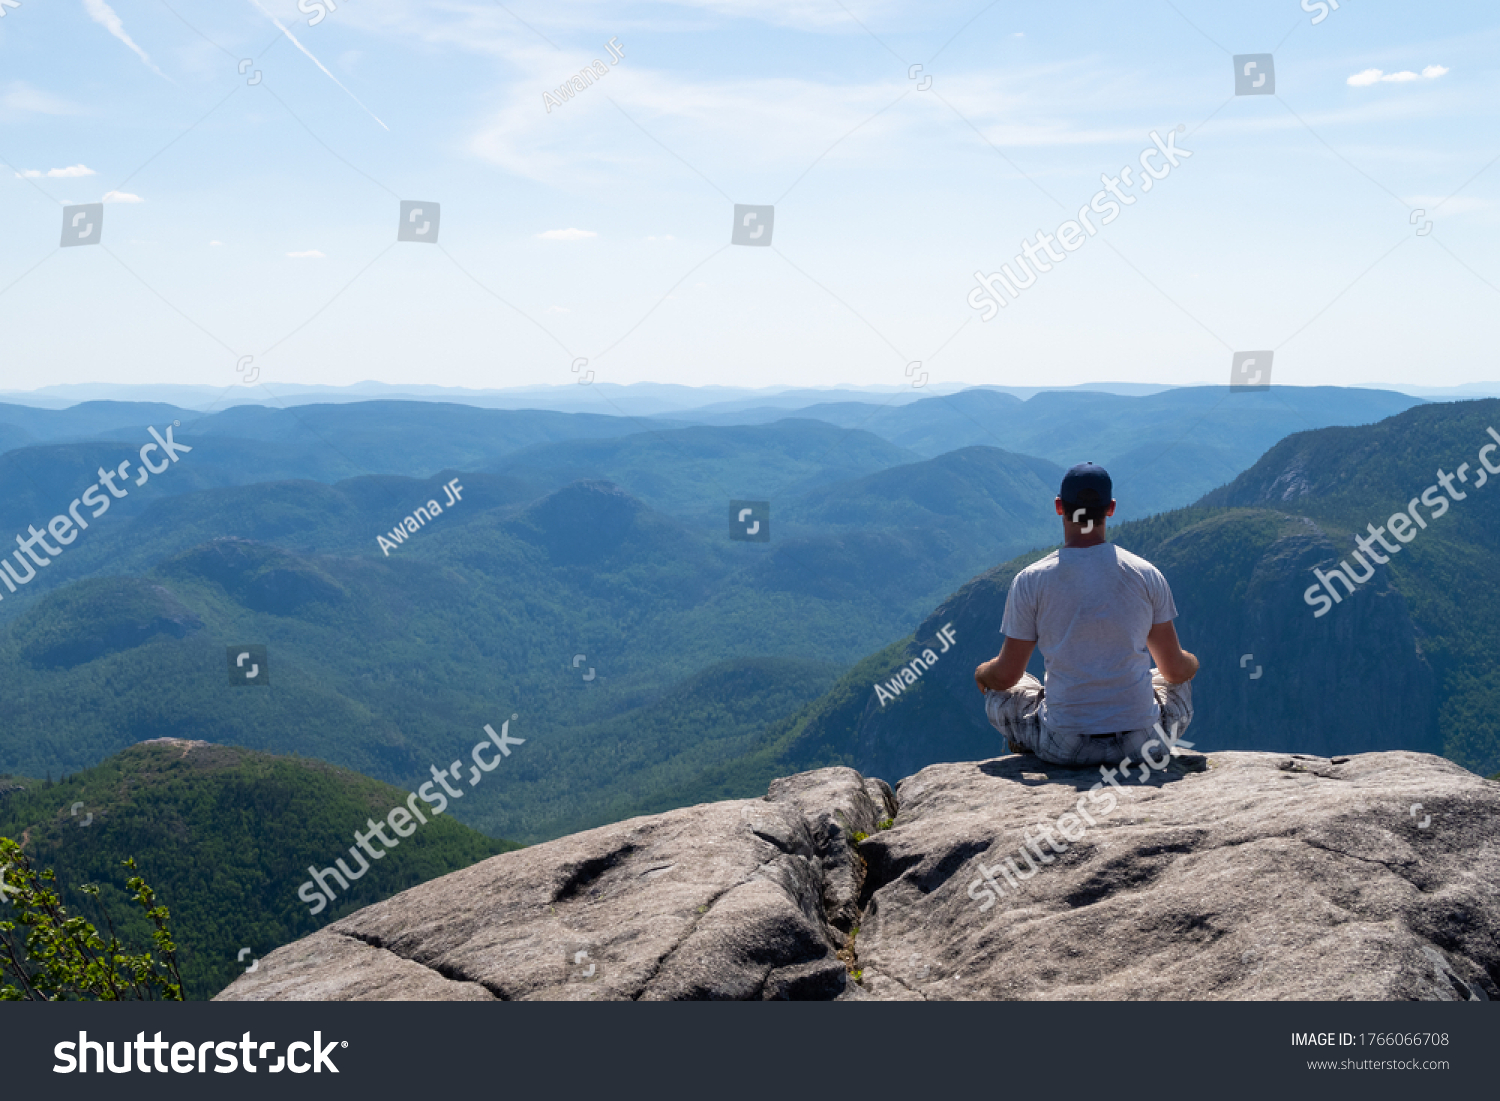 """Young man admiring the landscape at the top of the """"mont du lac des cygnes"""" (swan lake mountain) in Charlevoix, Quebec"""